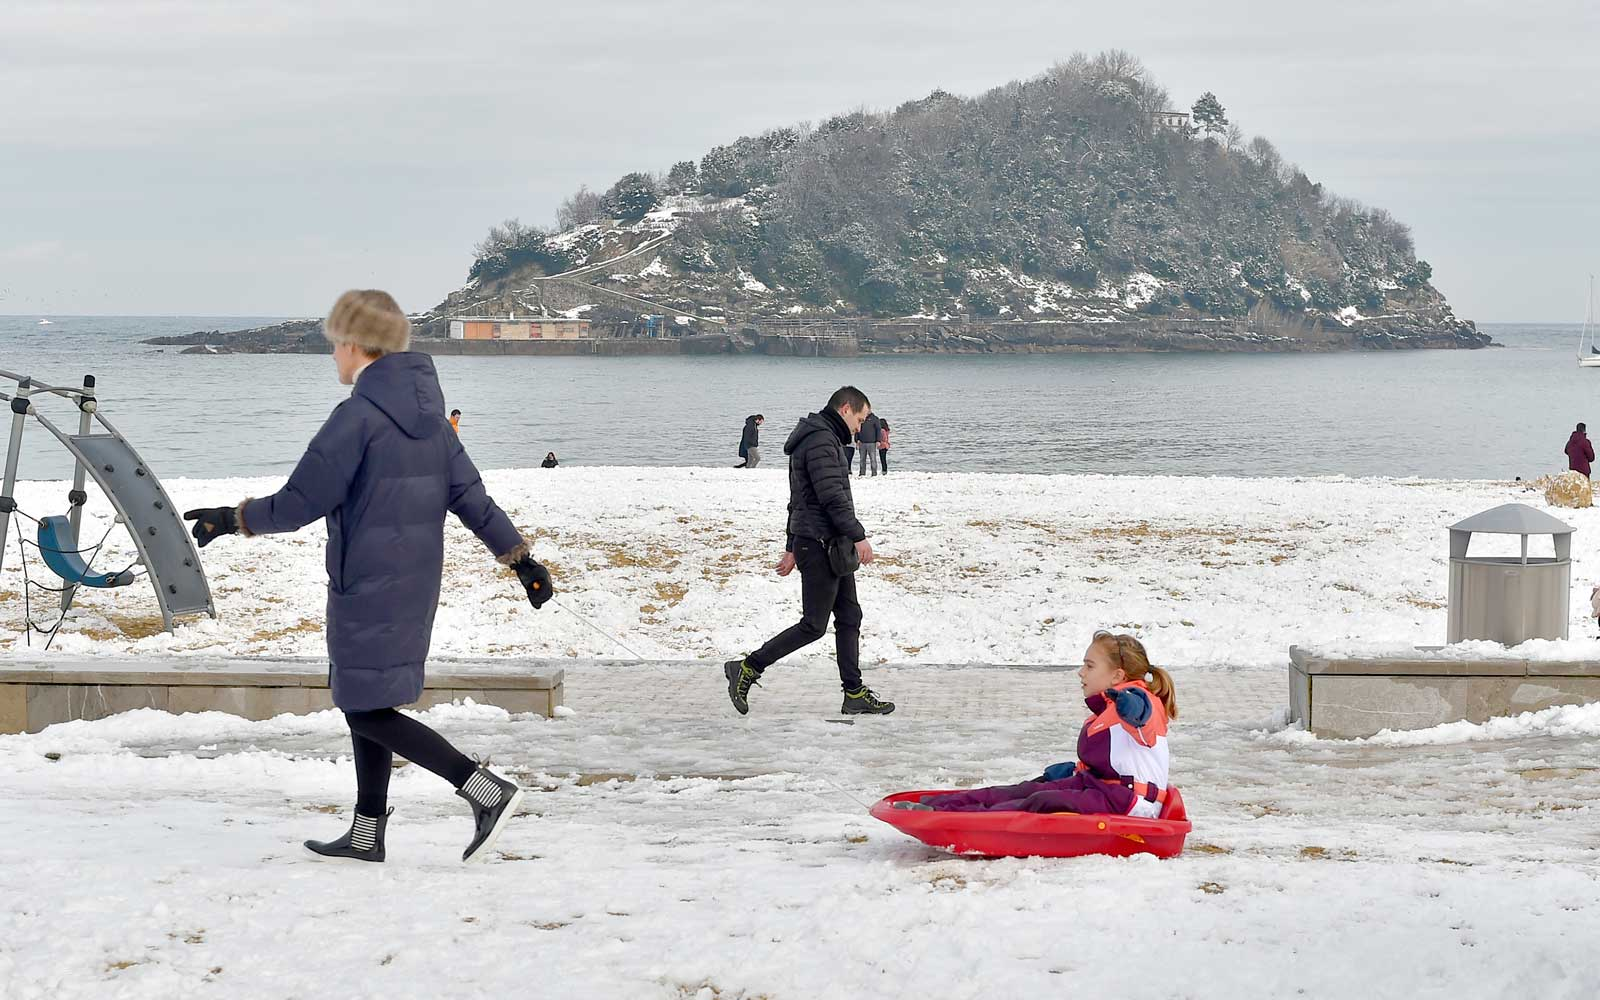 A man pulls his child along in a sledge at the Ondarreta beach in San Sebastian, northern Spain, after a heavy snowfall on February 28, 2018.